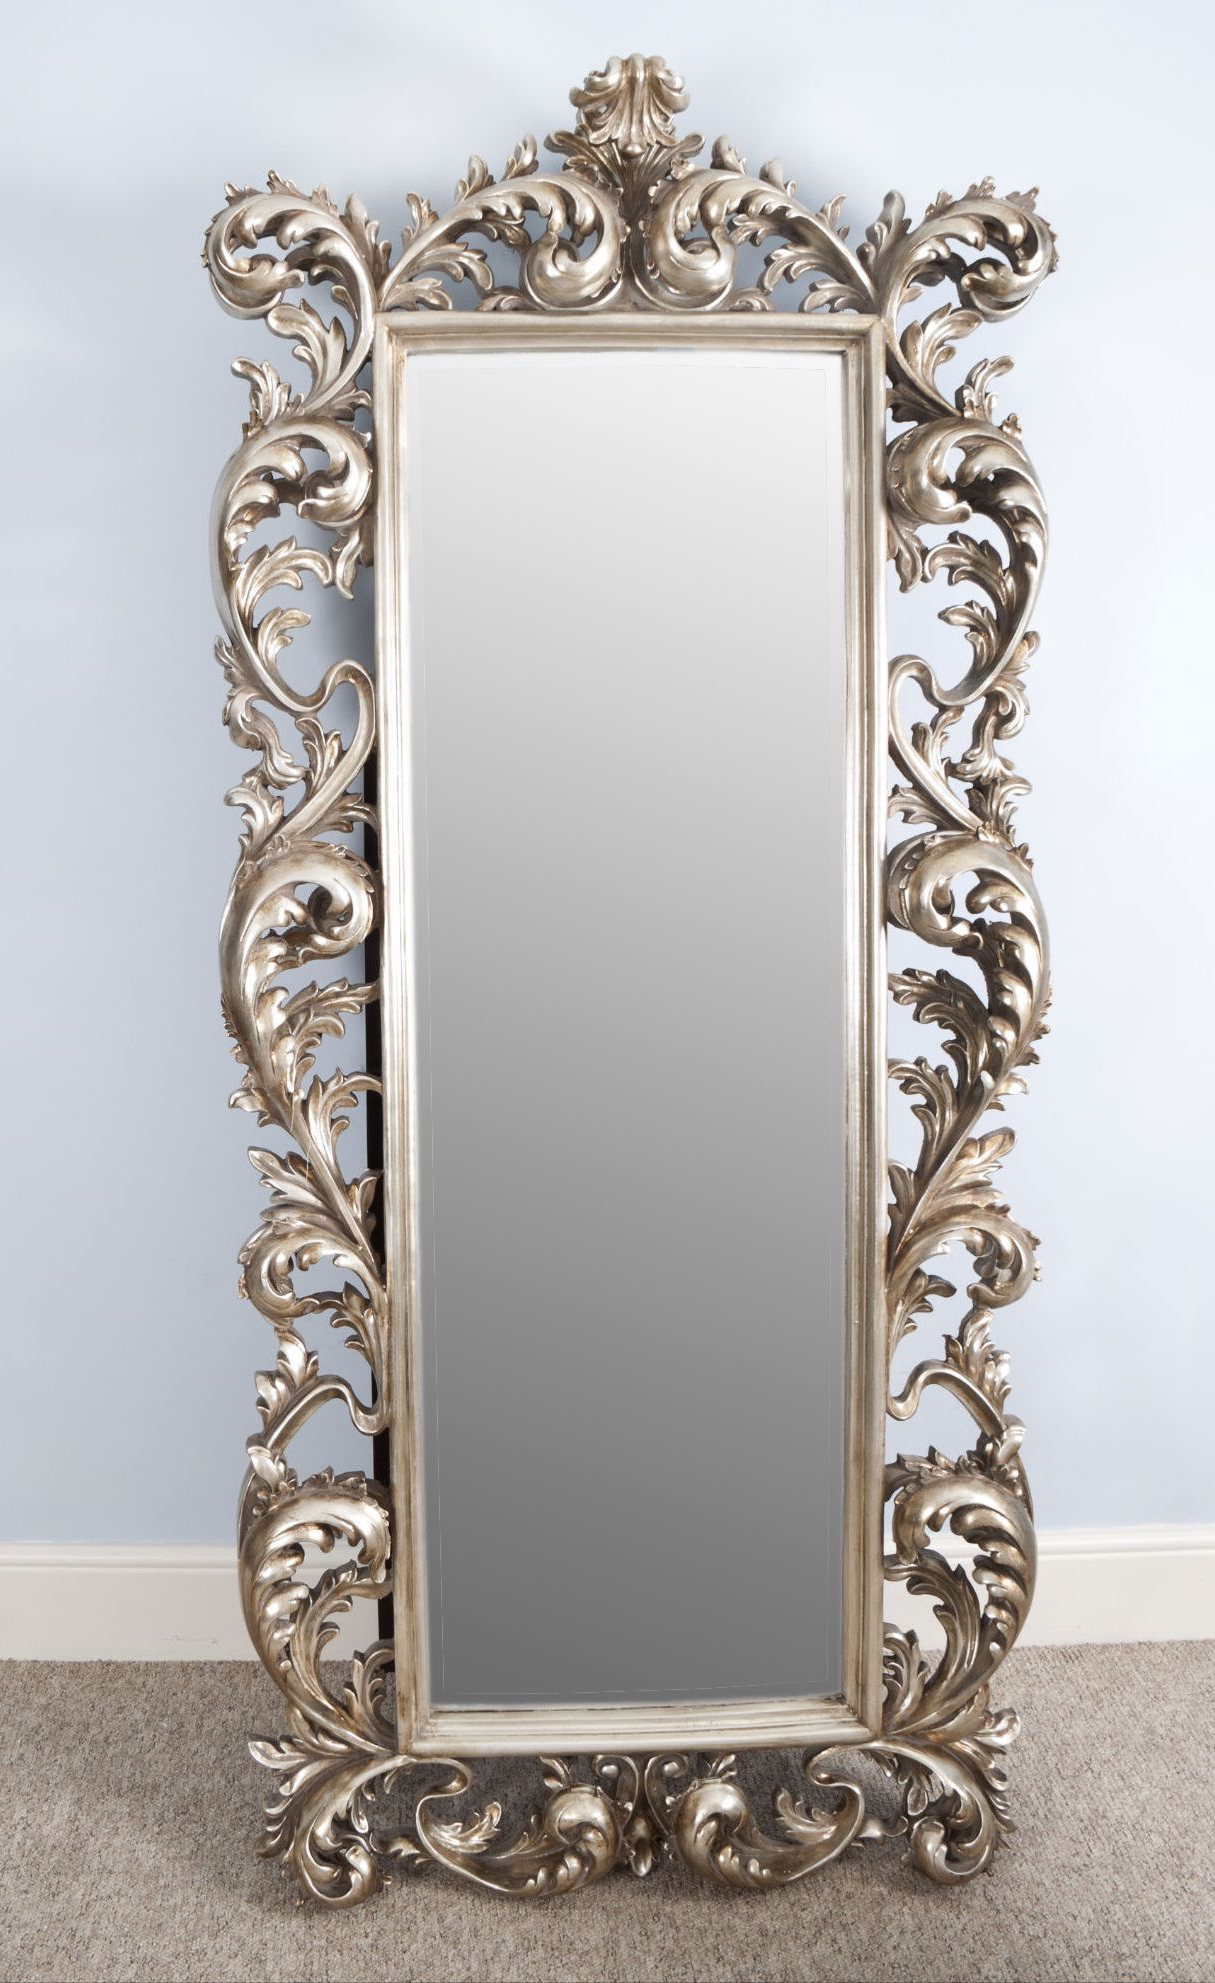 Newest Large Full Length Silver Rococo Cheval Mirror – Mercure In In Large Ornate Wall Mirrors (View 17 of 20)